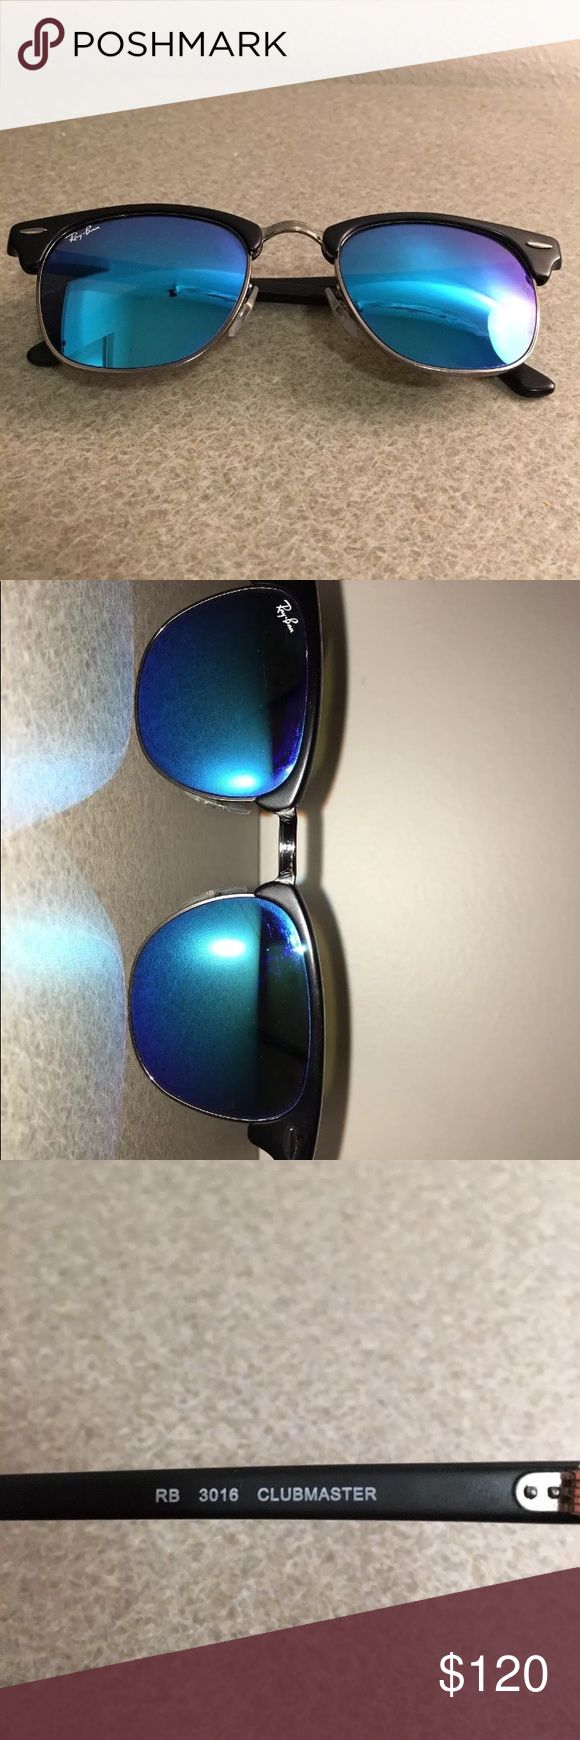 Almost brand new Club Master Ray Bans Worn a handful of times  Blue lenses  Great condition Ray Bans Accessories Sunglasses